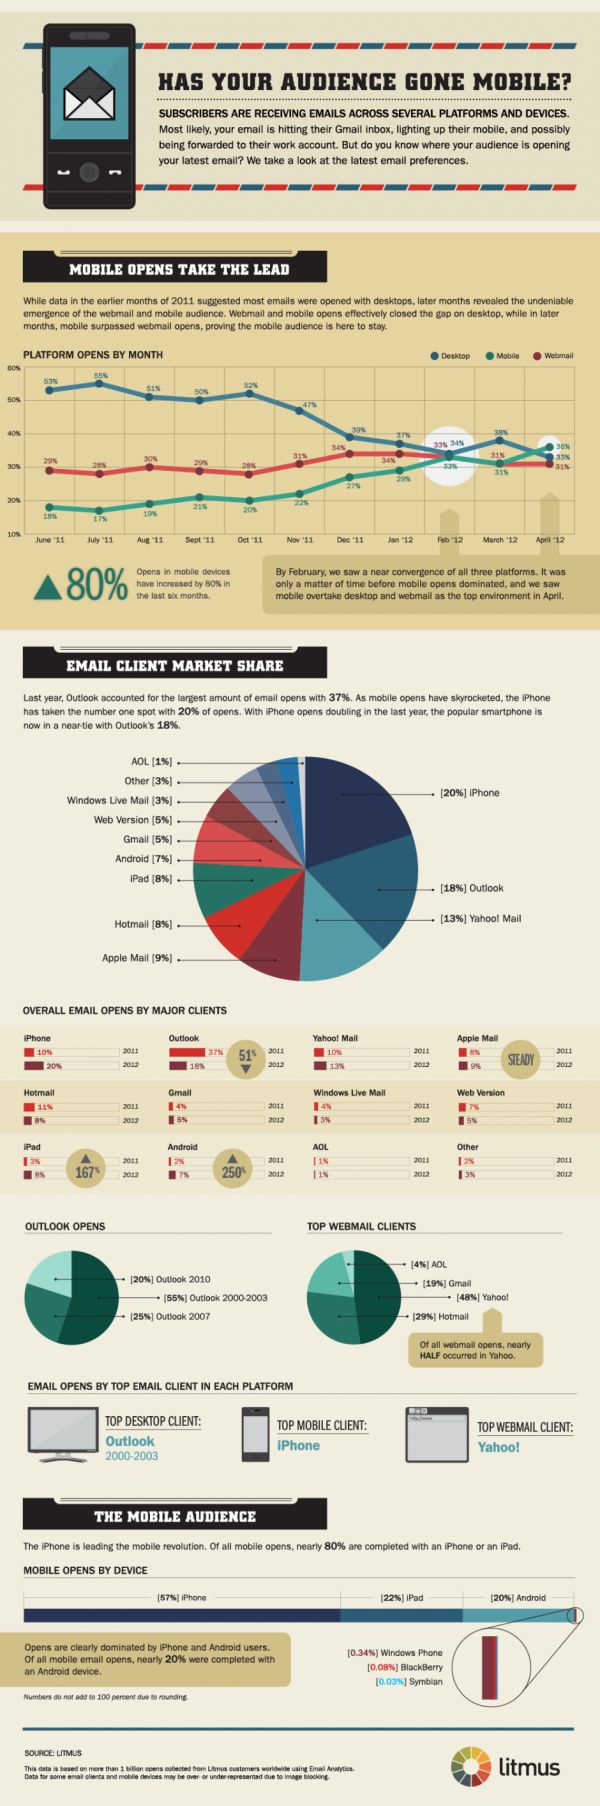 iPhone Beats Outlook As Top Email Client, As Mobile Overtakes Desktop  … [Infographic]